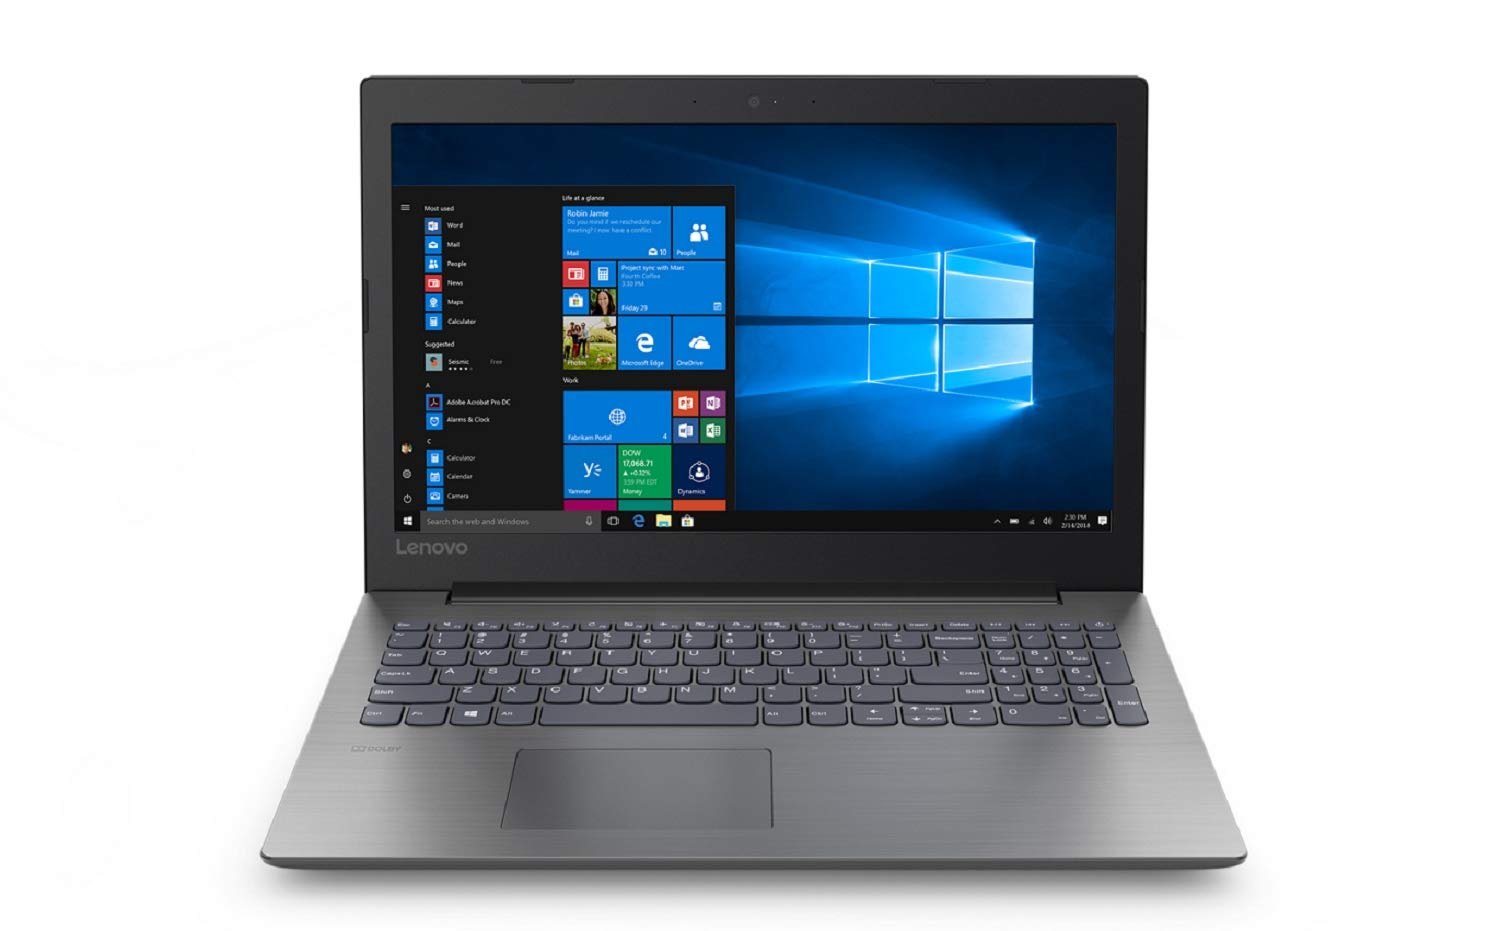 [宅送] Lenovo Black Ideapad High Performance 15.6 inch Home 10 and B07HXKWZT7 Business Laptop (Intel Celeron N4000 Processor, 16GB RAM, 480GB SSD, 15.6